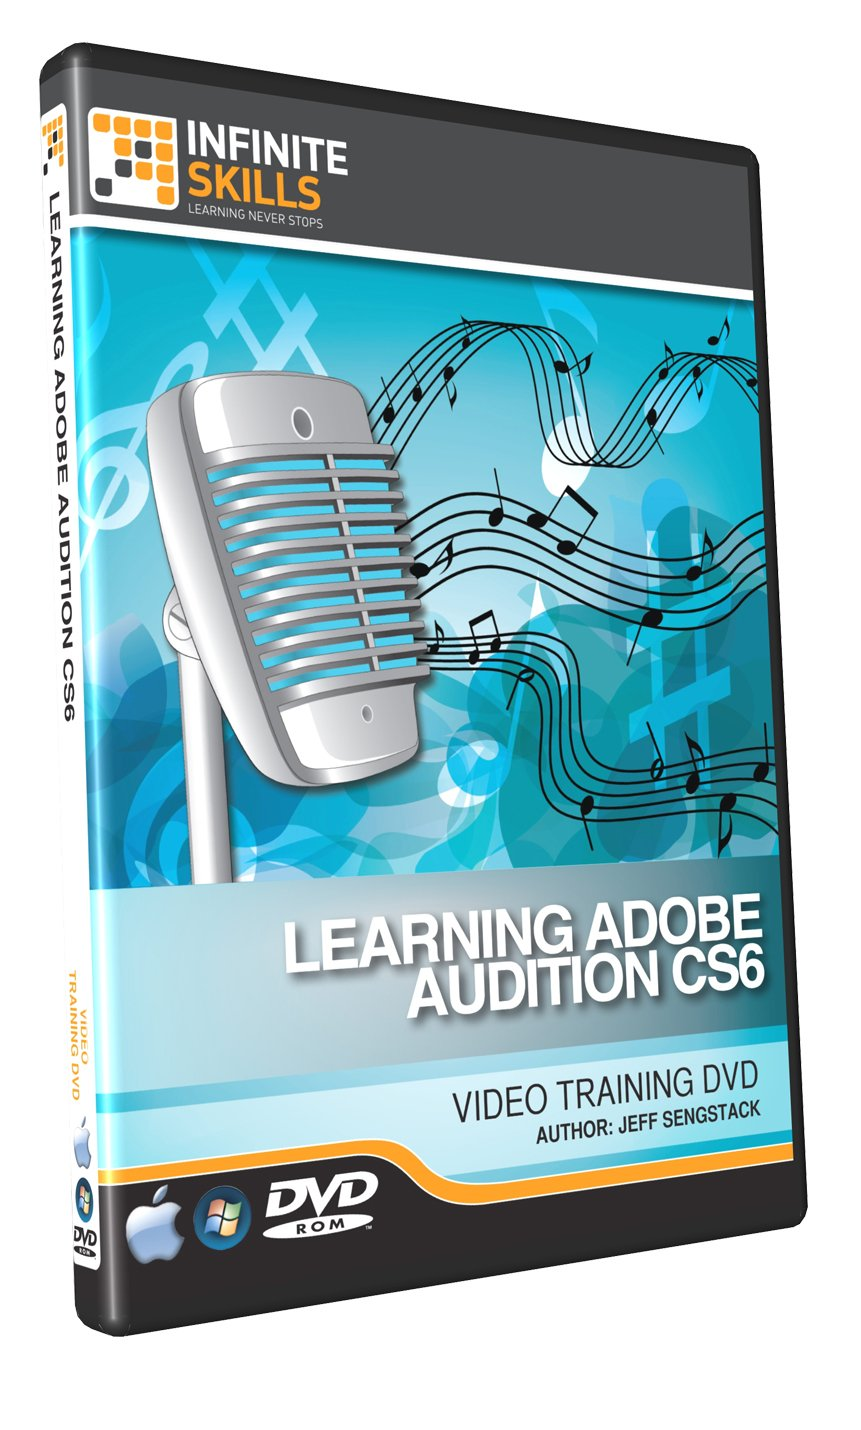 Learning Adobe Audition CS6 - Training DVD - Tutorial Video by Infiniteskills